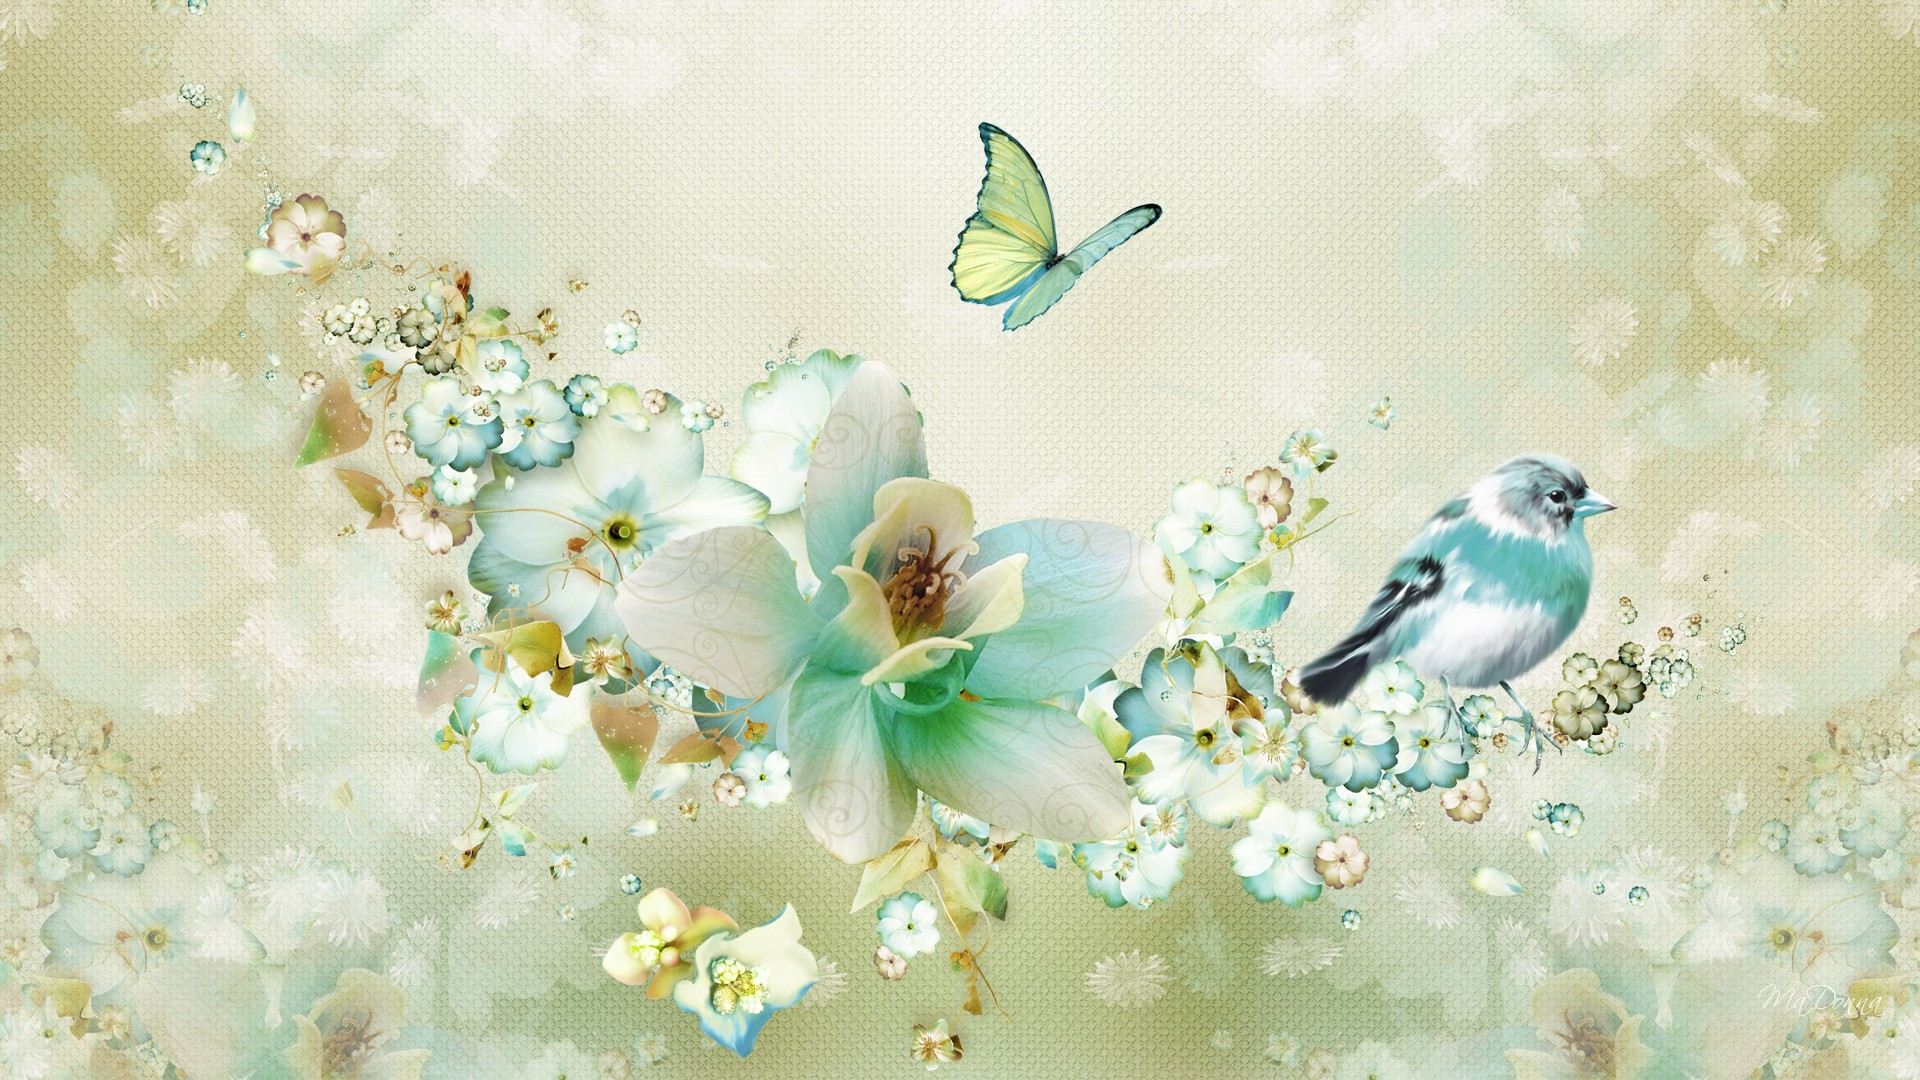 Flowers Birds and Butterfly 1920x1080